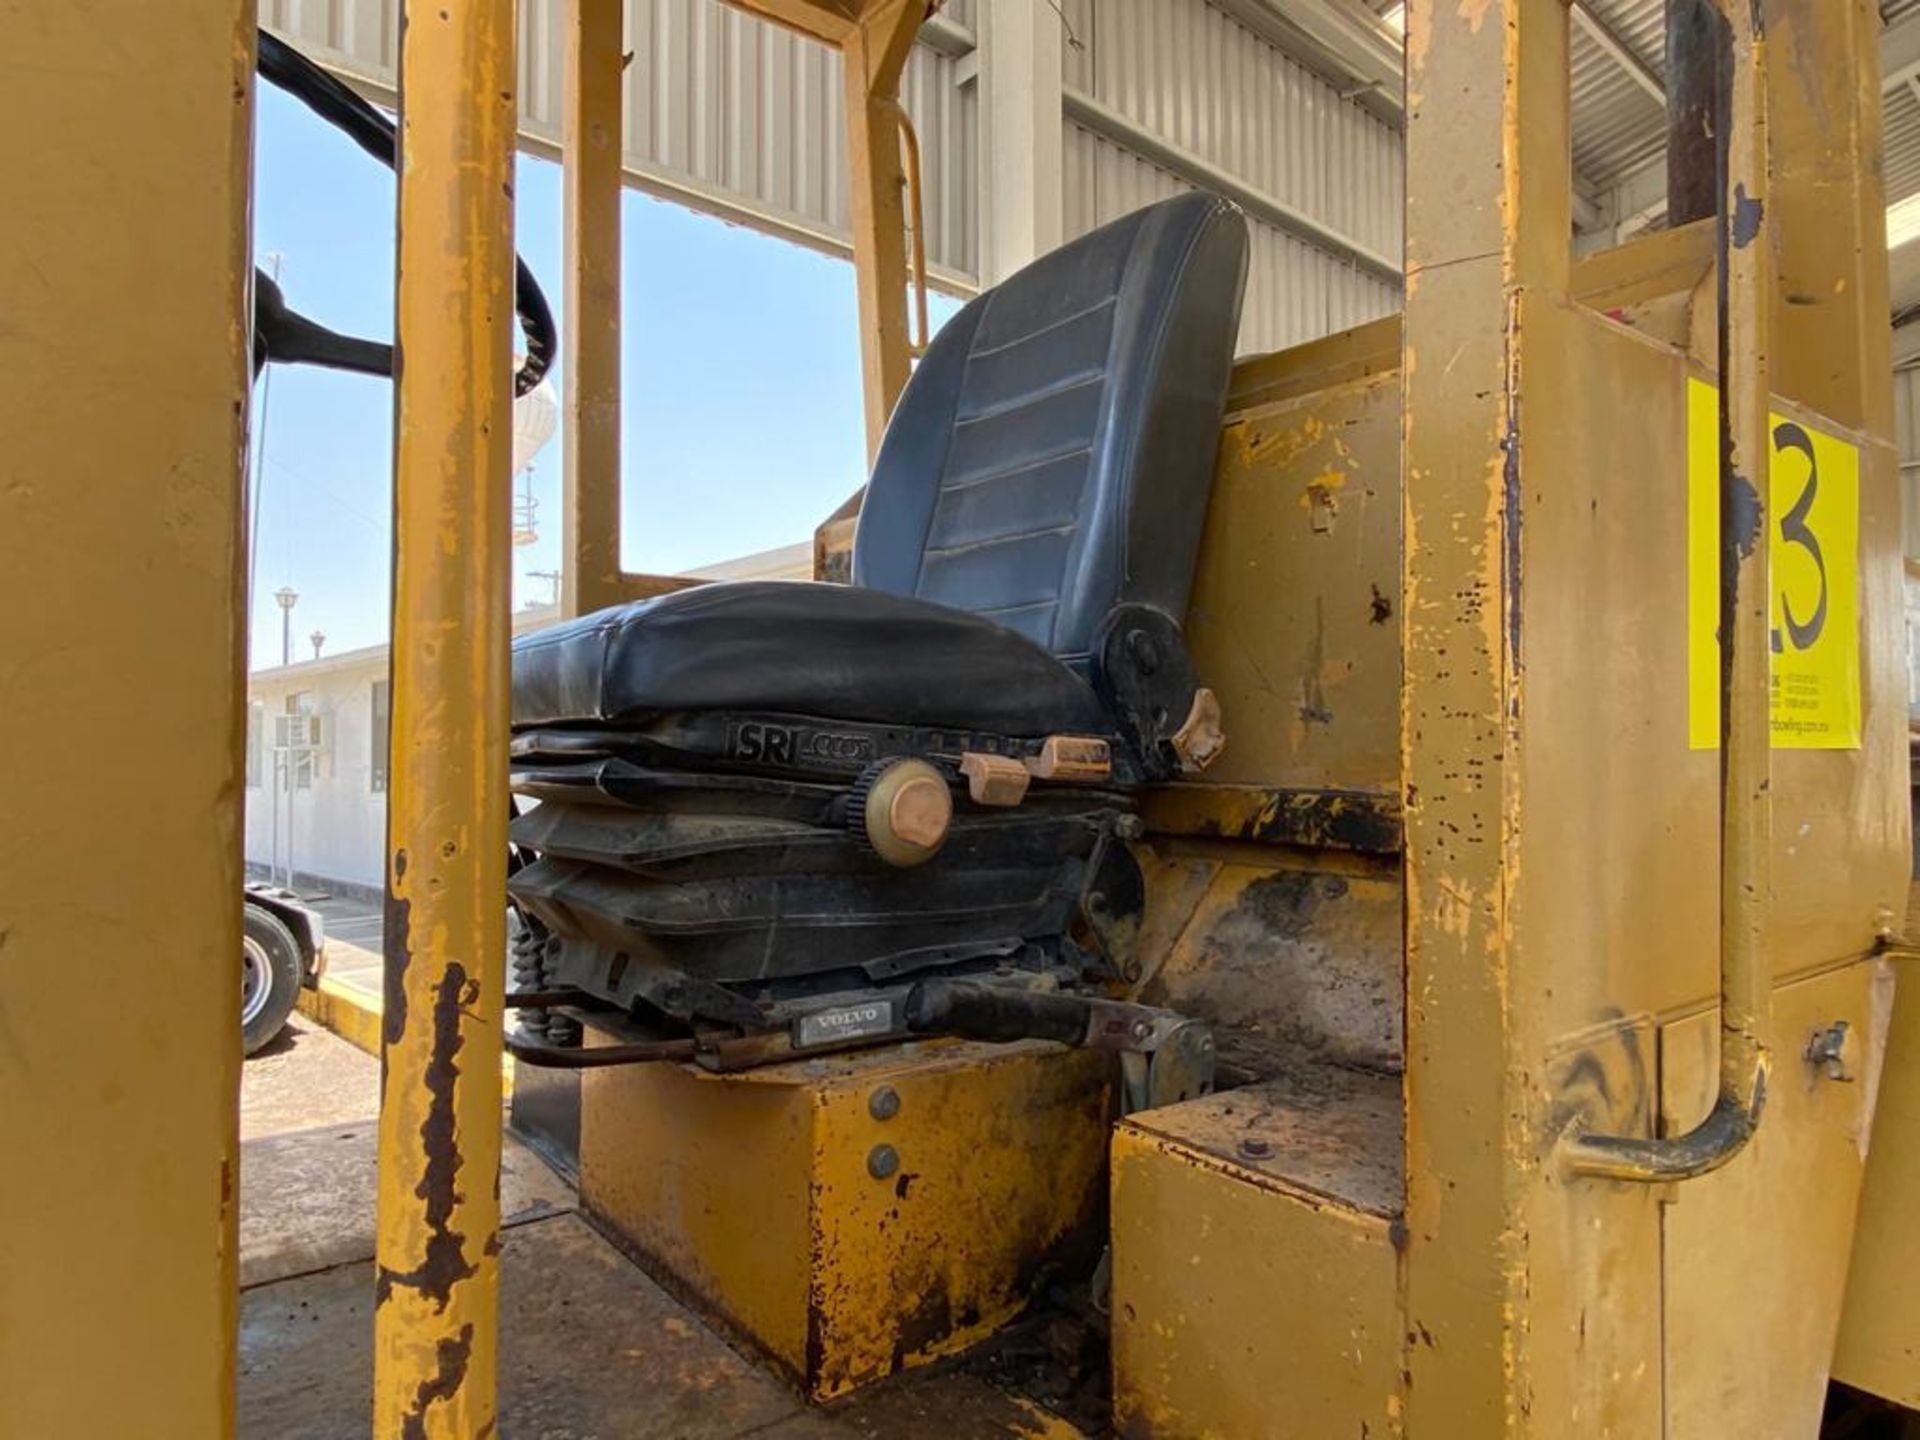 Volvo BM TYPE L 30 Michigan Front Loder, automatic transmission - Image 25 of 53